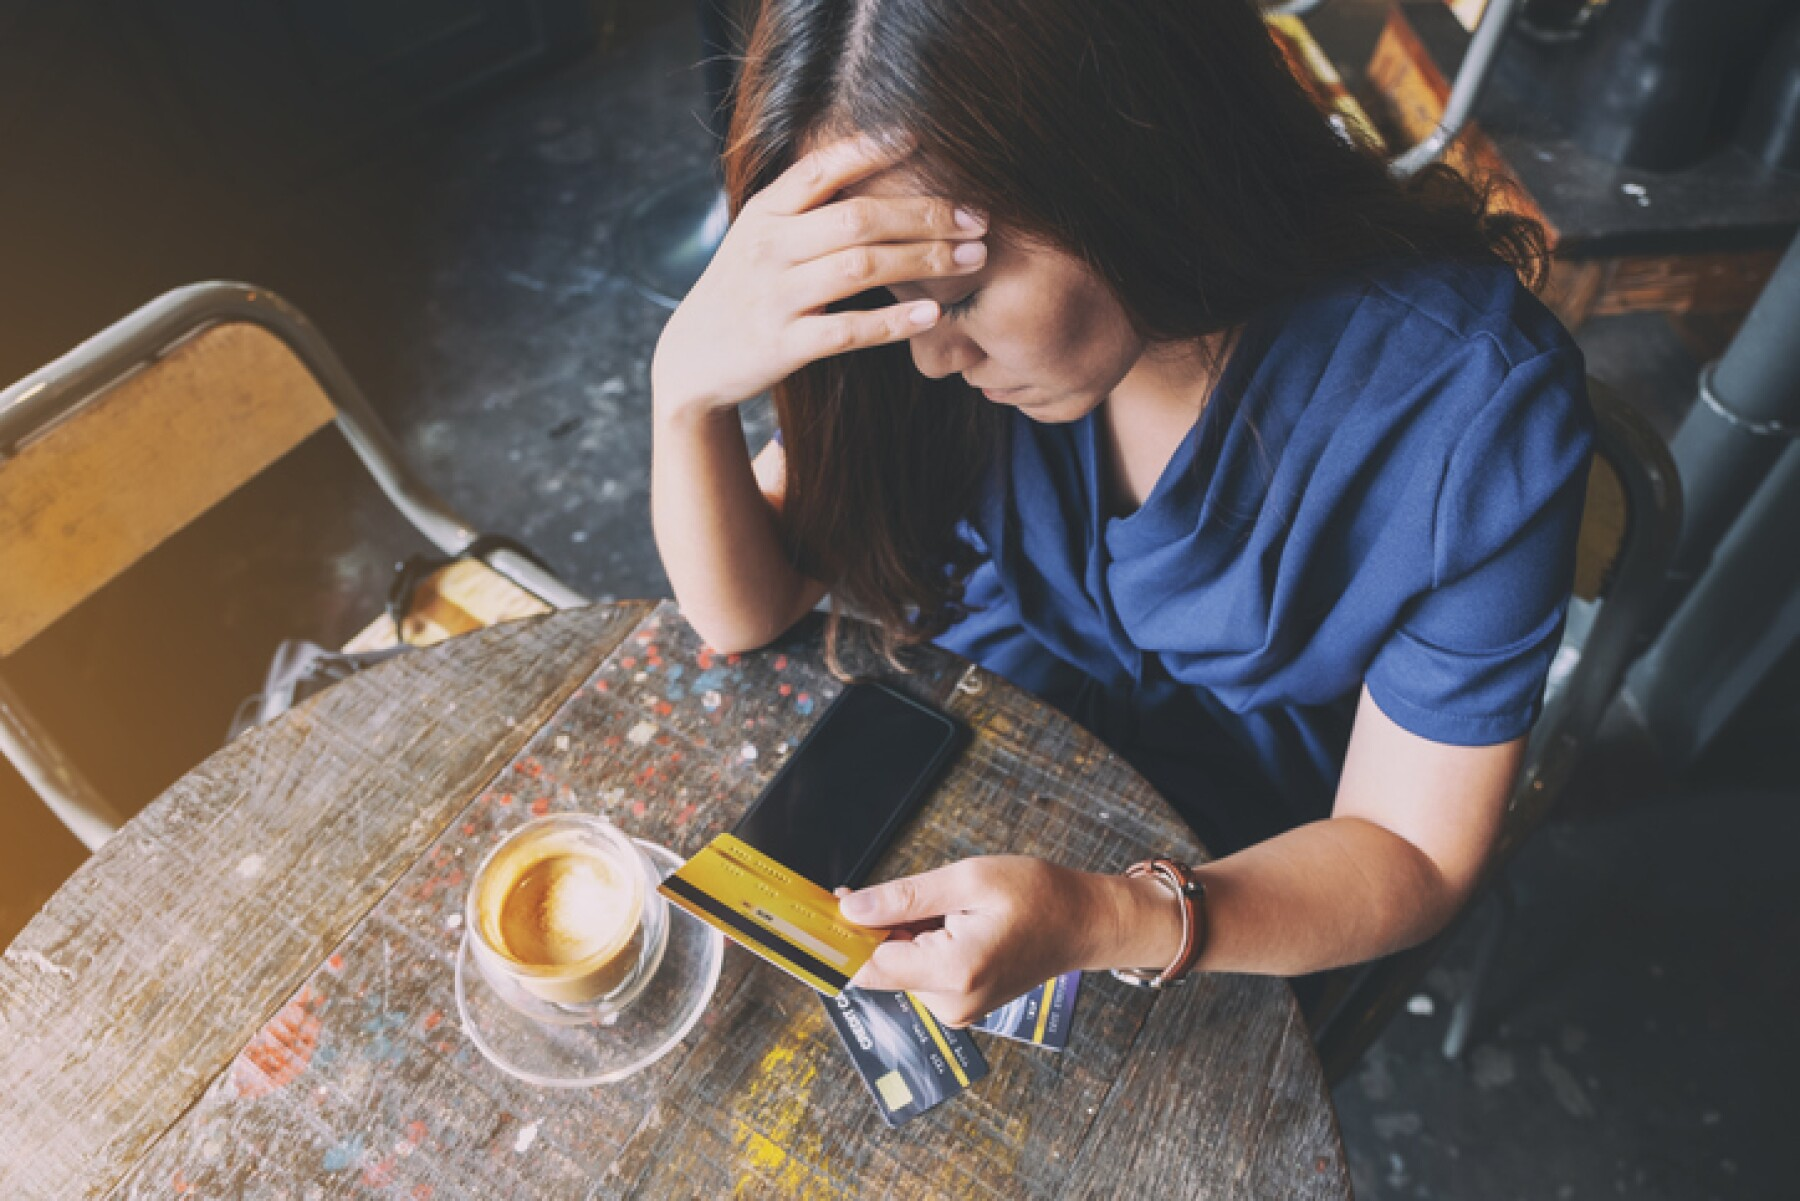 woman get stressed and broke while holding credit card